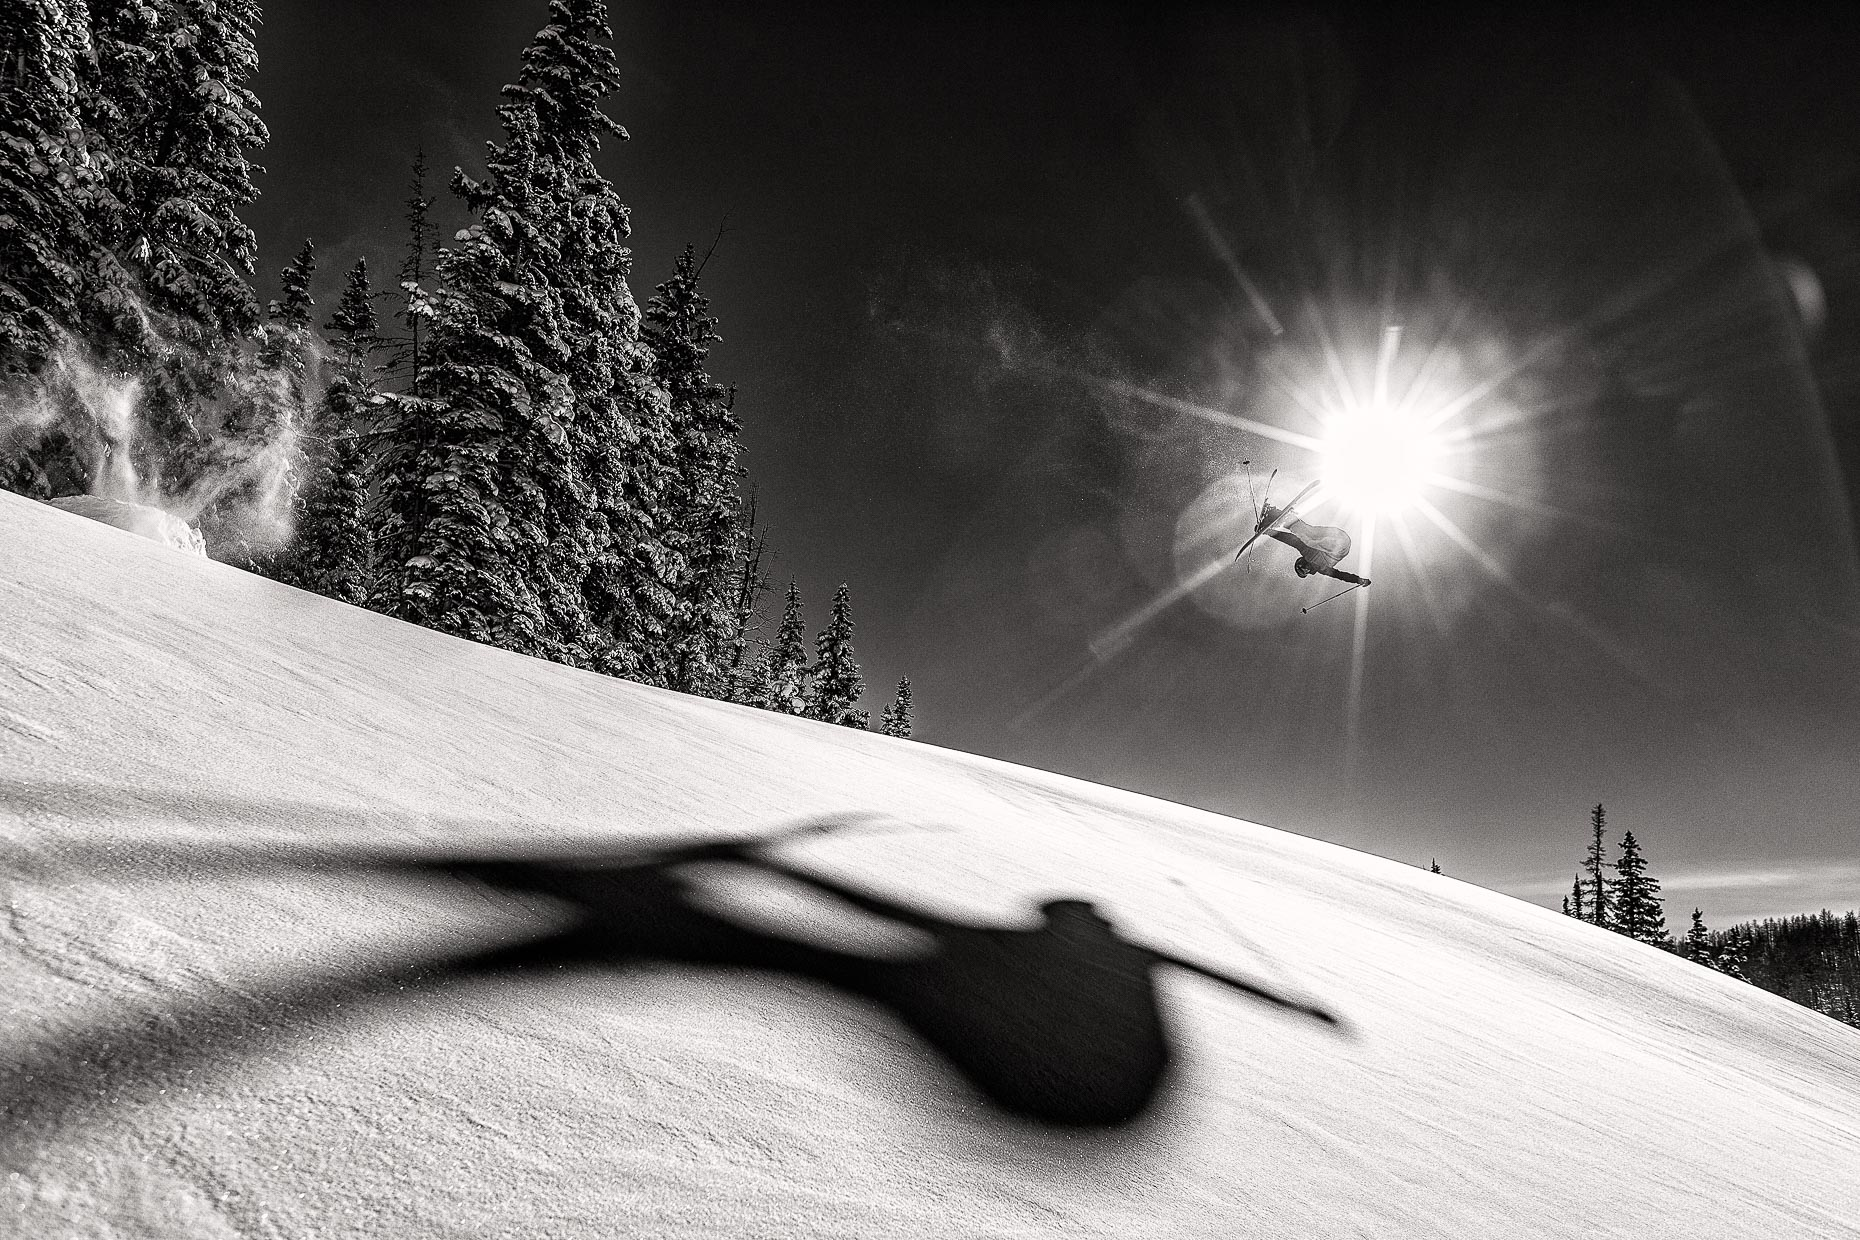 Dane Tudor, Park City, UT, 007_201312096550-Edit